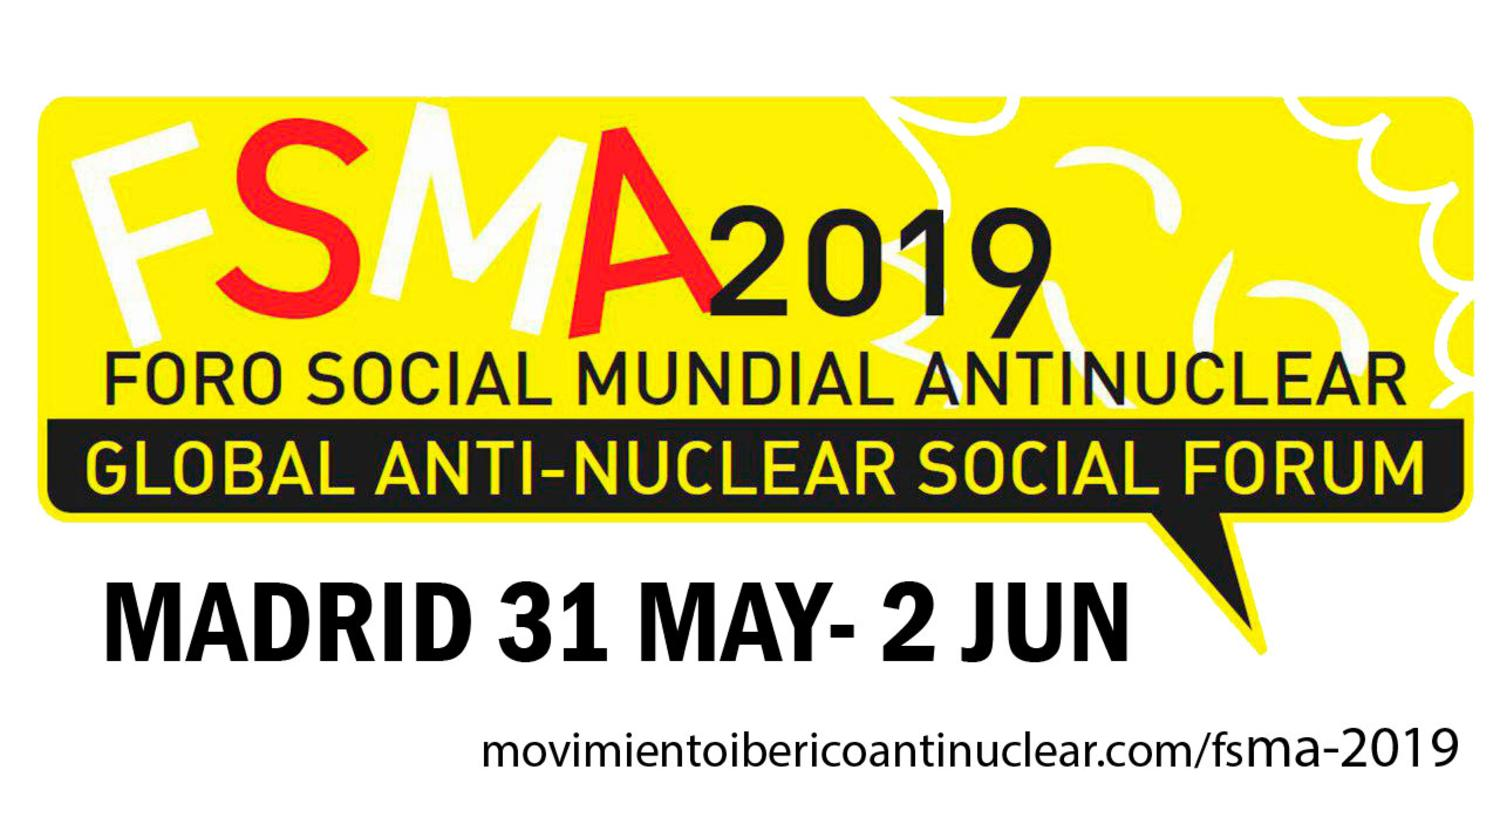 Foro Social Mundial Antinuclear